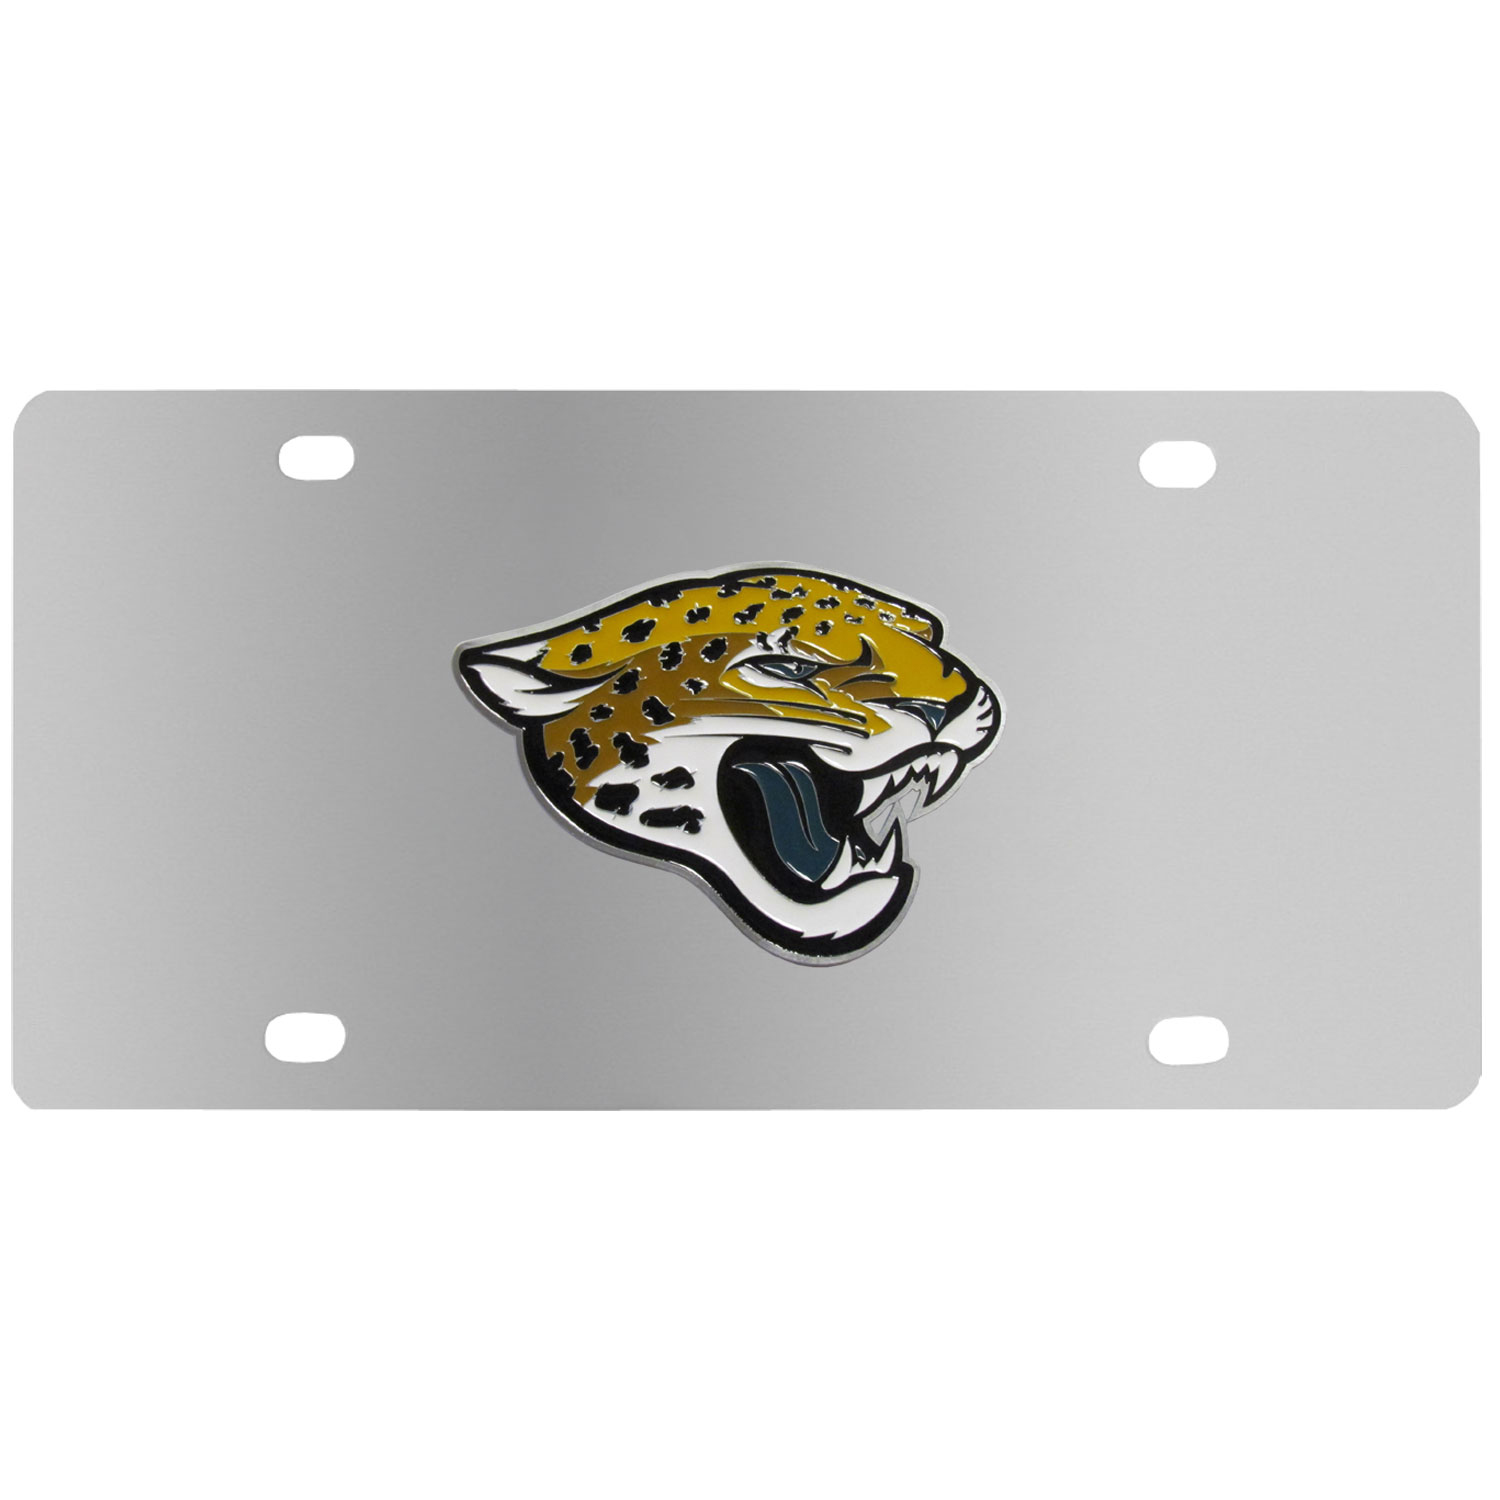 Jacksonville Jaguars Steel License Plate - Show your team spirit with our stainless steel logo plates. Each plate features a carved and enameled Jacksonville Jaguars emblem approximately 4 inches. Great for your vehicle or to hang on the wall in your home or office.